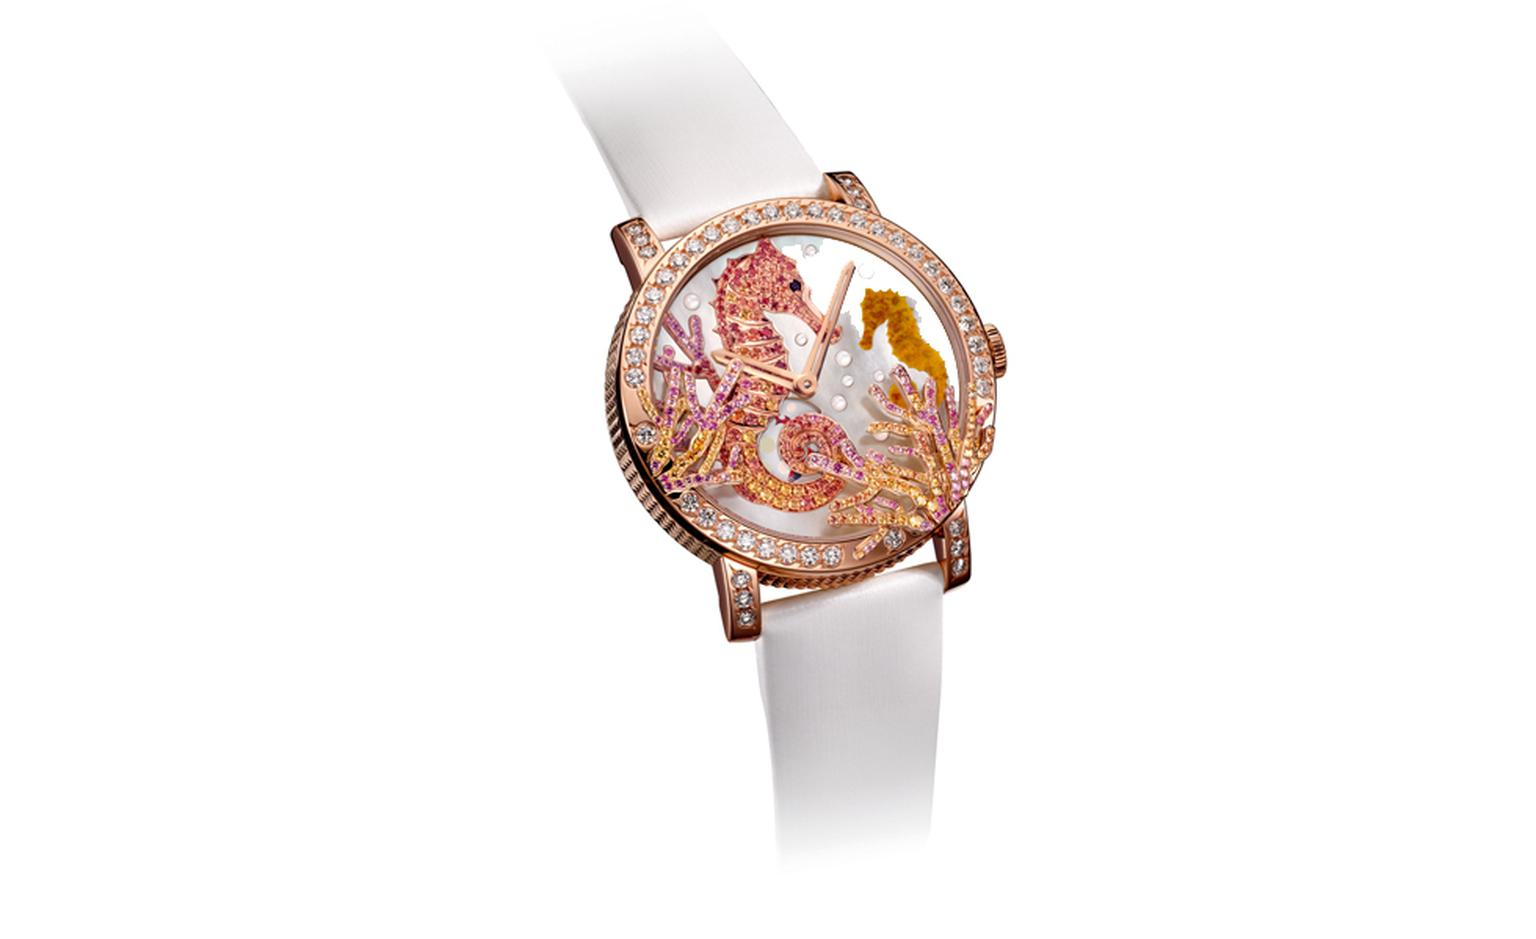 BOUCHERON, Aquatic Waves, Crazy Seahorse Watch